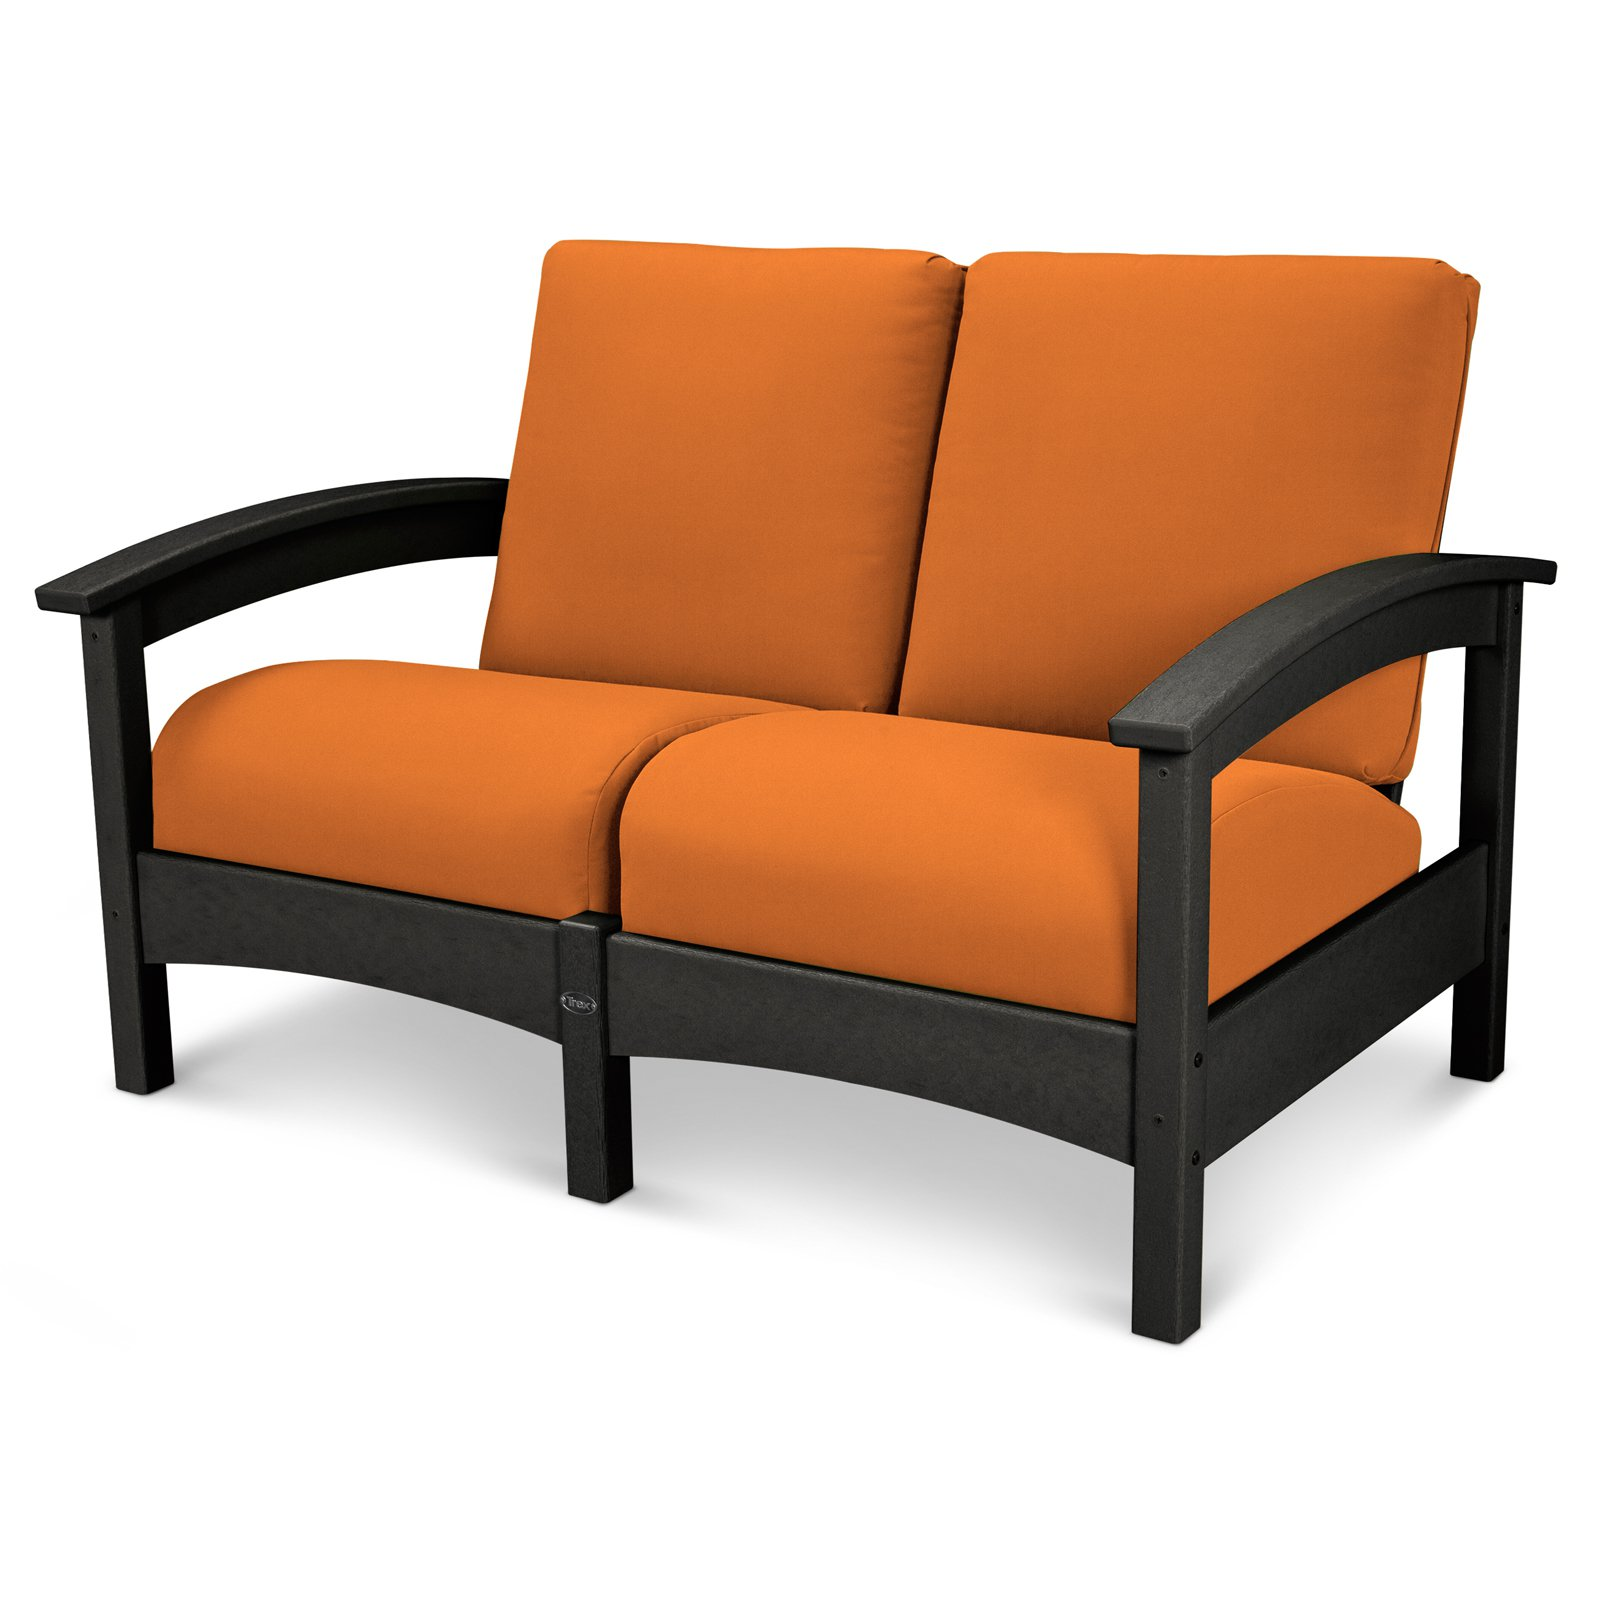 Trex Outdoor Furniture Recycled Plastic Rockport Club Settee